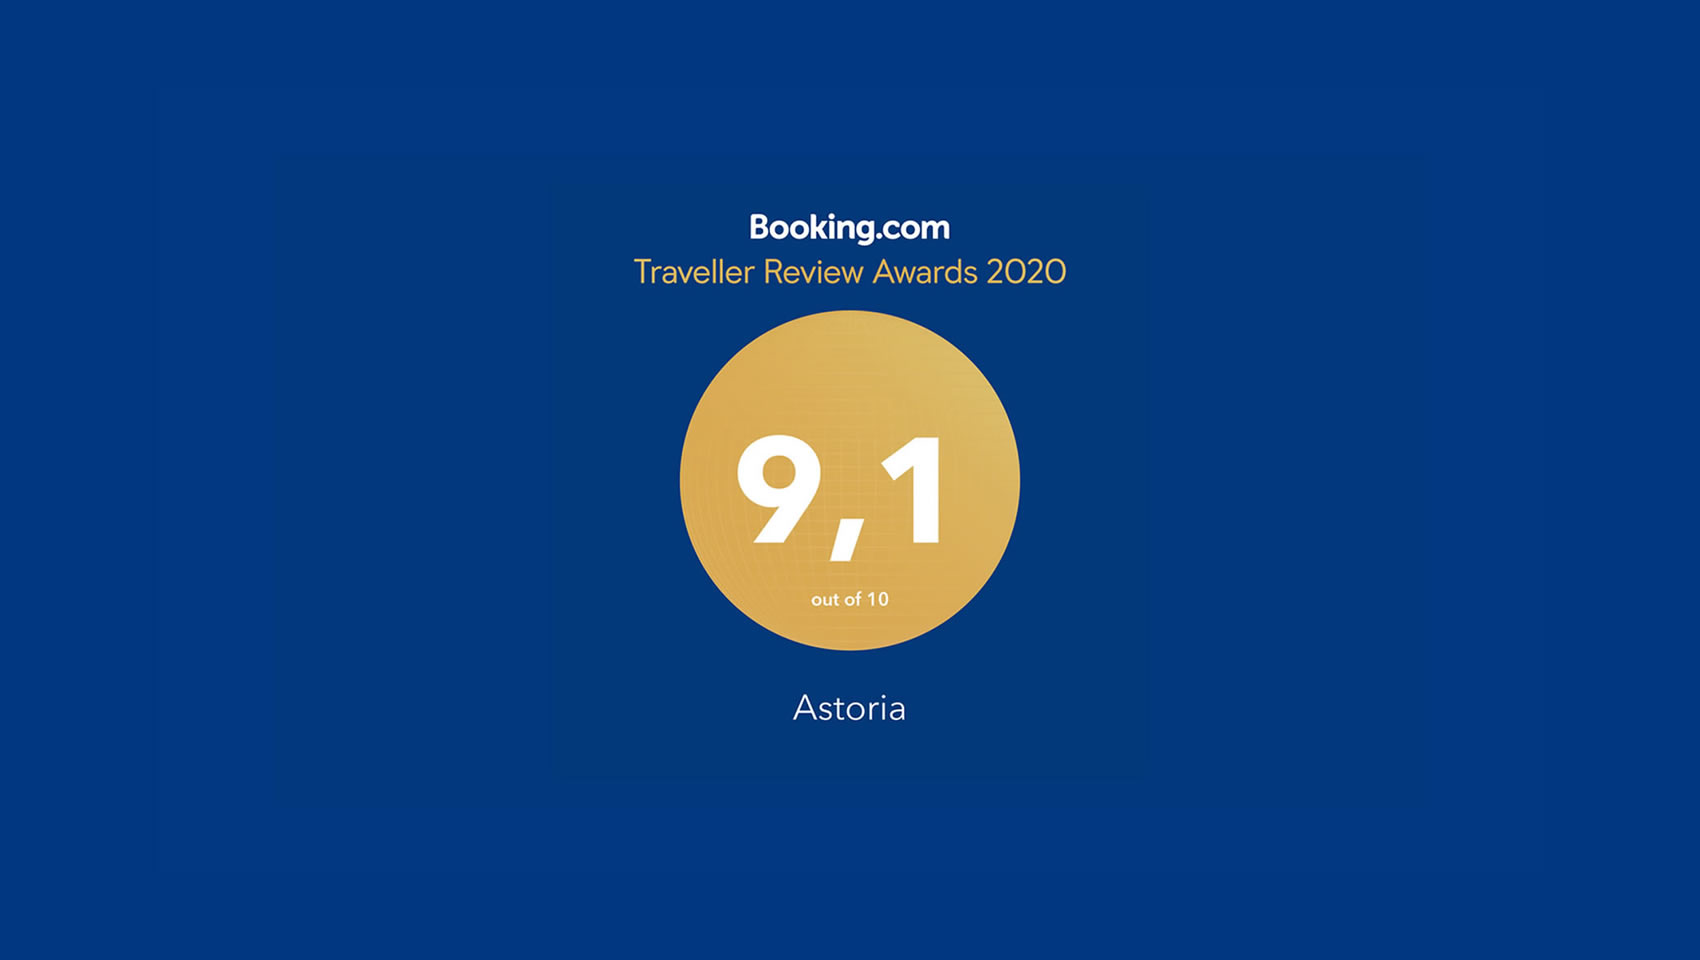 hotel Astoria booking